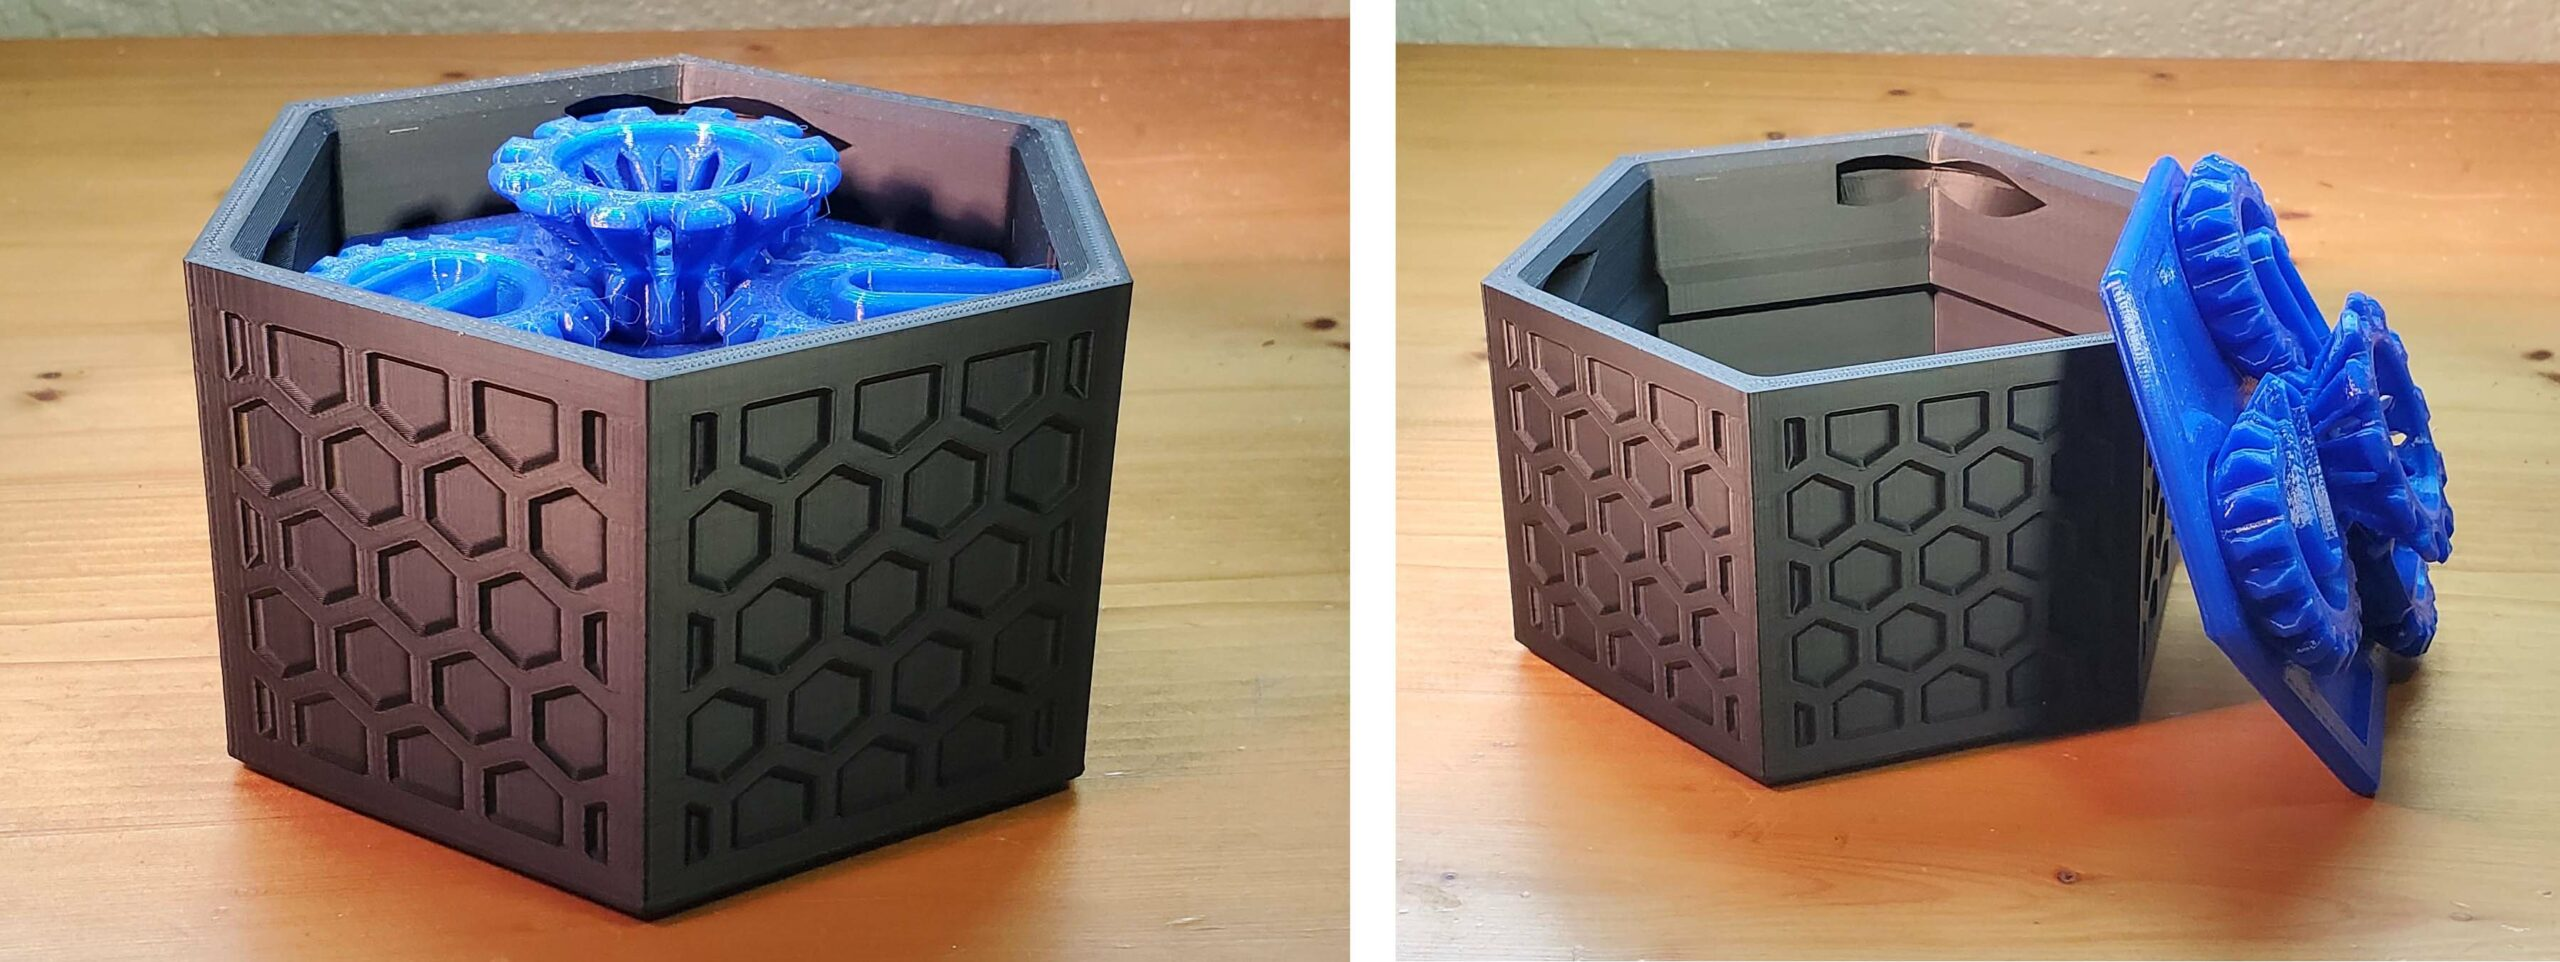 creator3 magical canister